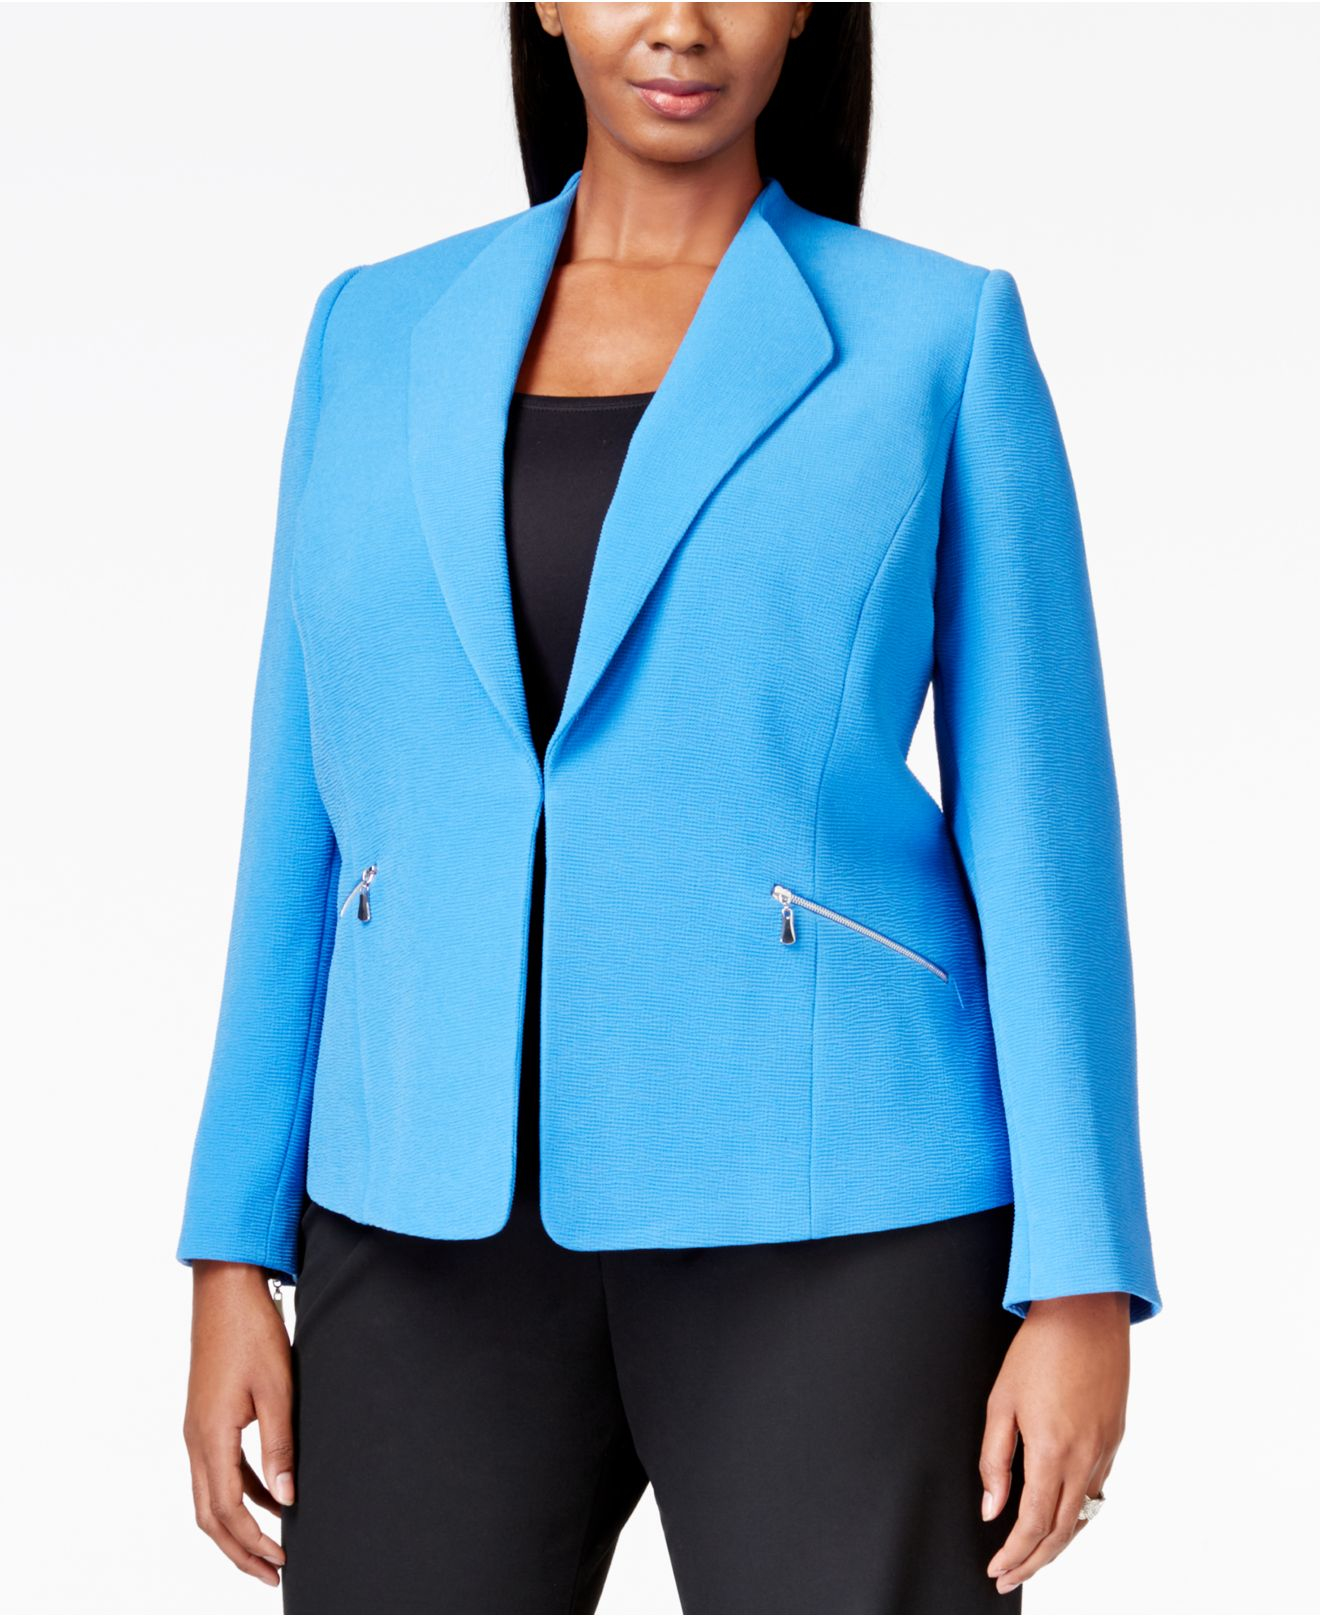 Shop Plus Size Jackets & Blazers in modern and classic styles at distrib-wjmx2fn9.ga Get the perfect fit at the best price in on-trend plus size fashions today!